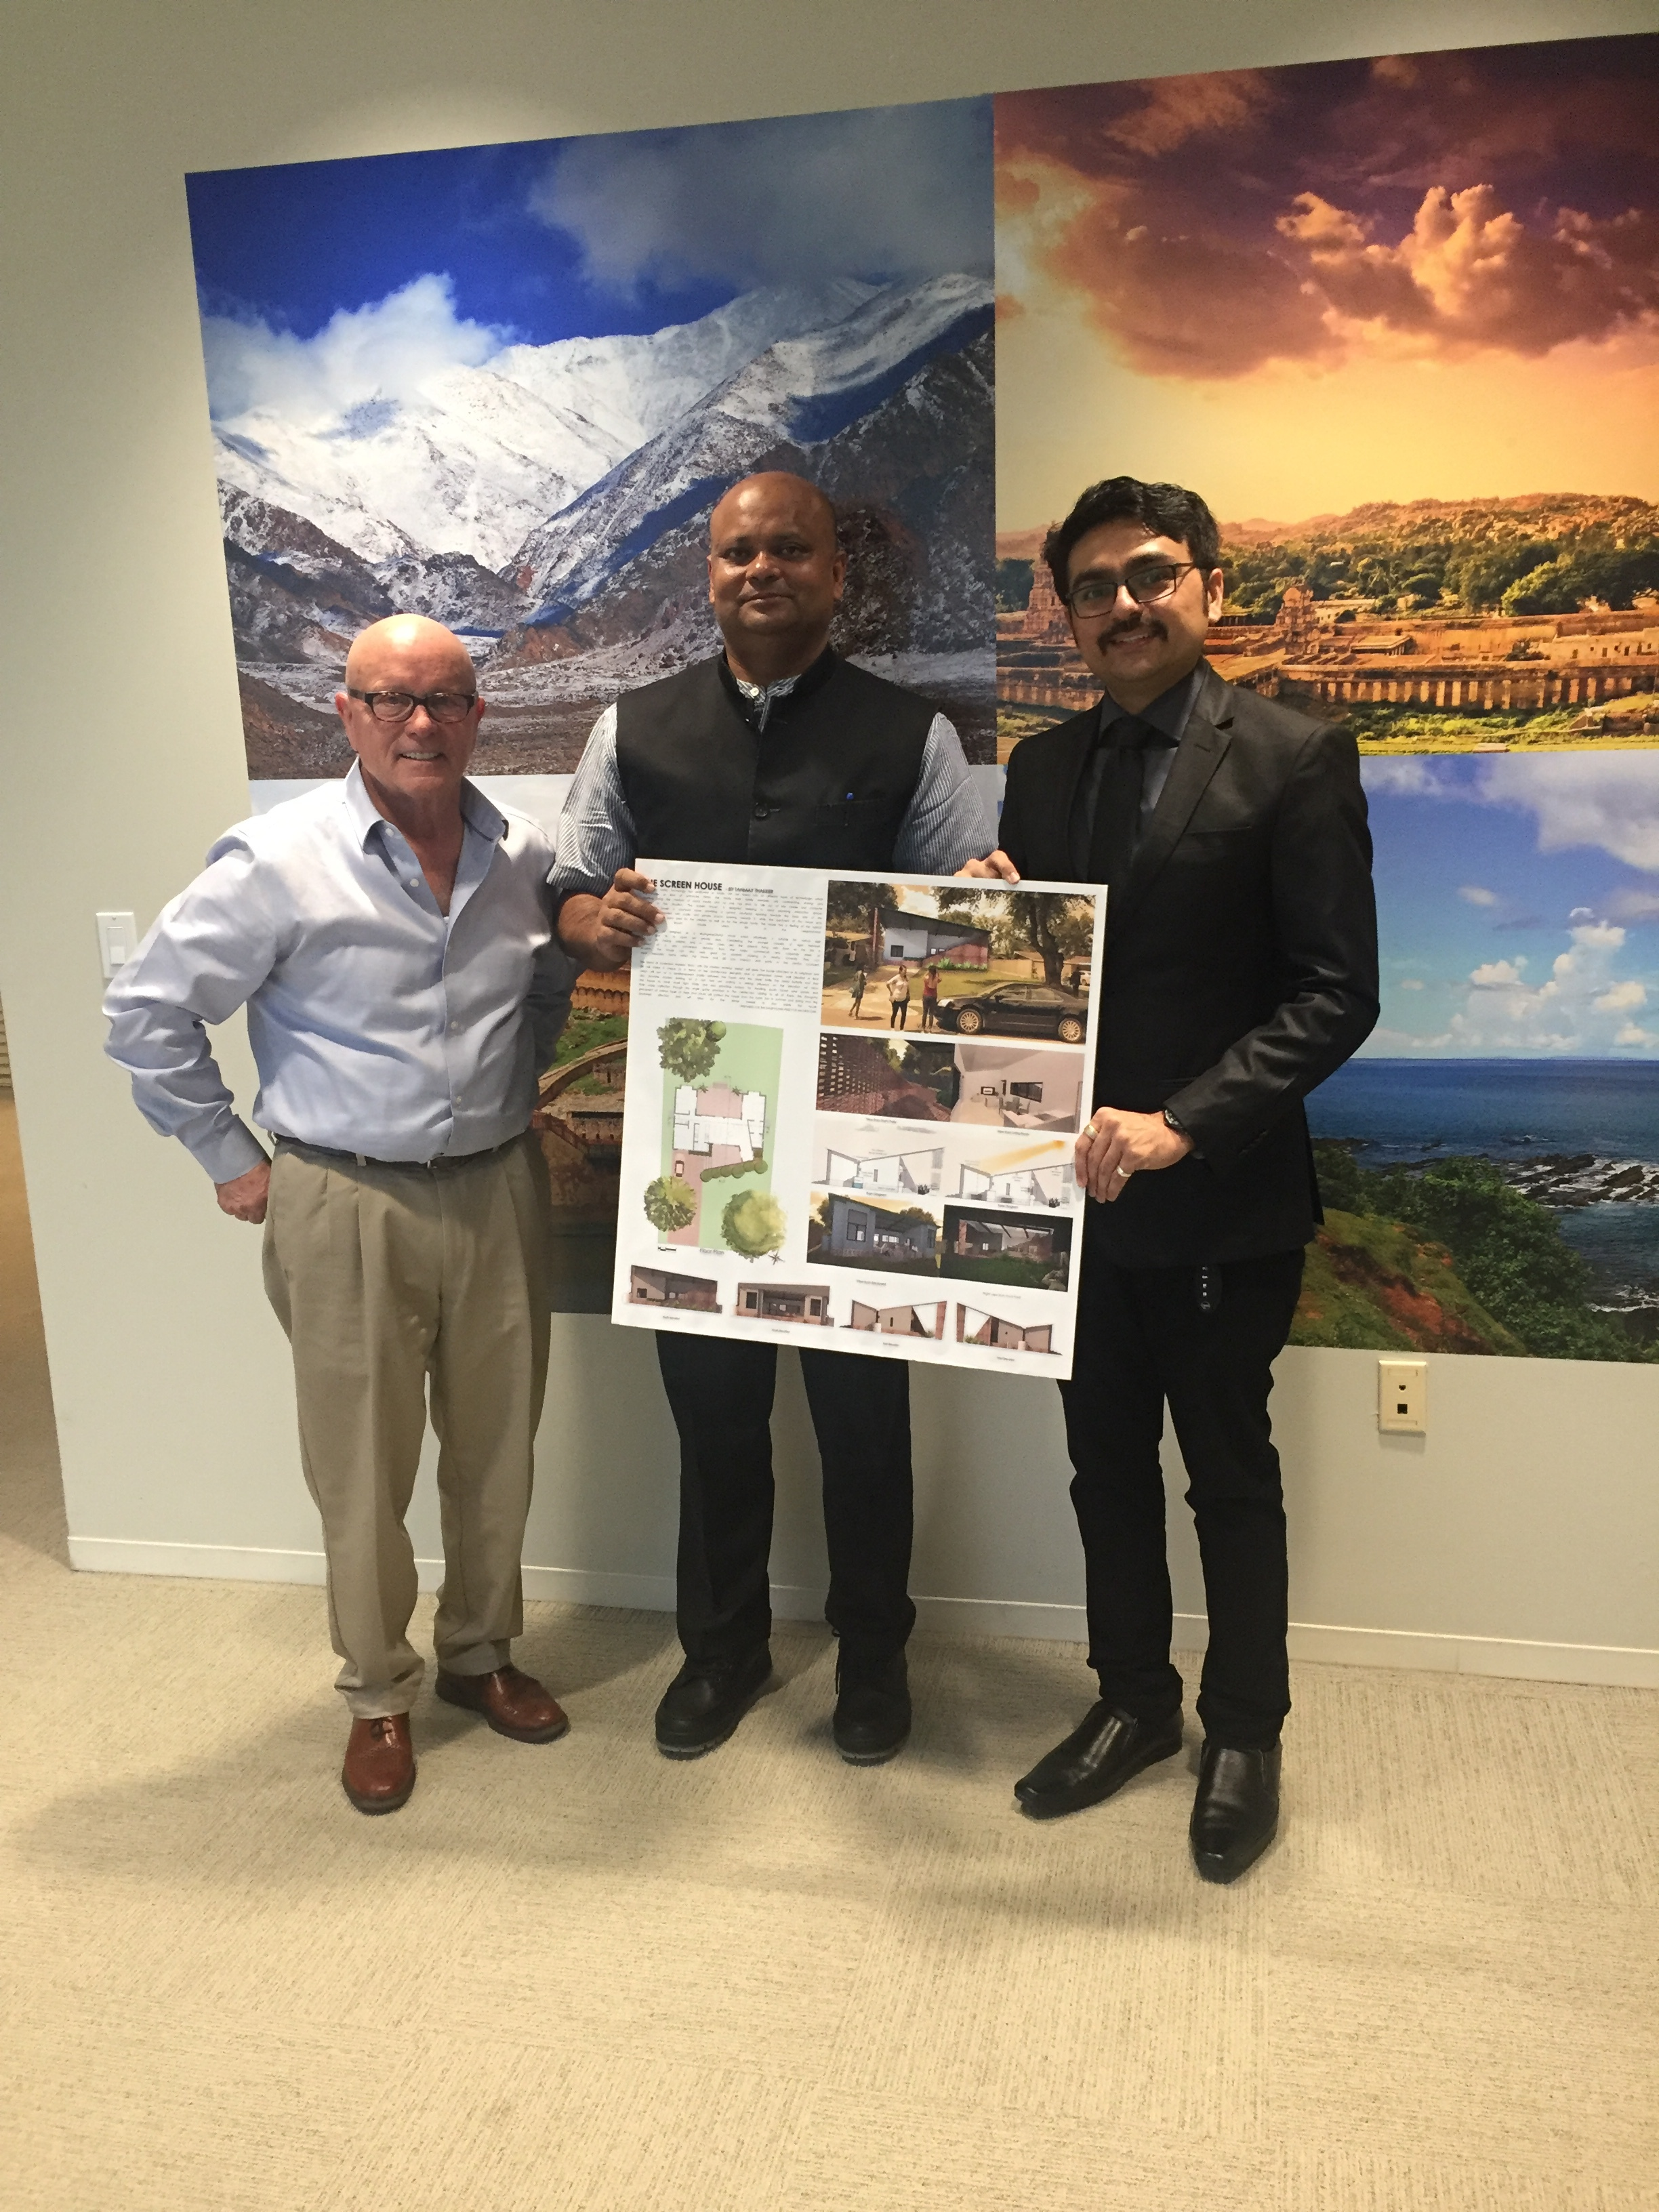 Michael Prentice (l) and Tanmay Thakker (r) with Consul General l Dr. Anupam Ray (c) during a visit to the Consulate General of India offices.